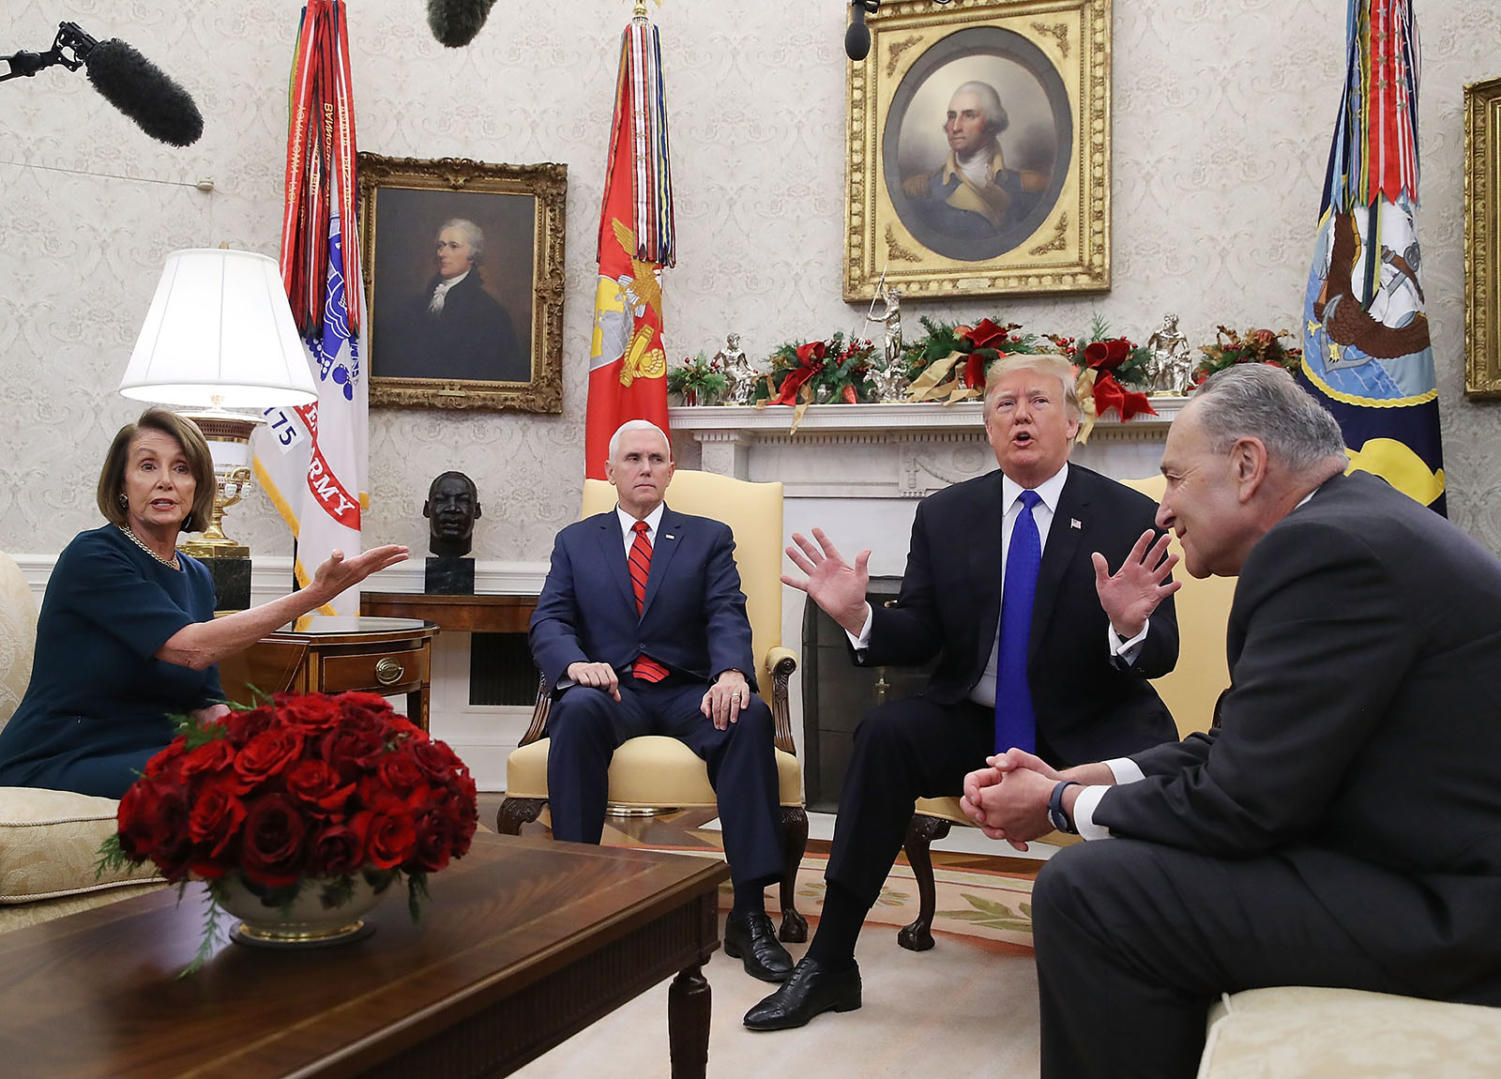 Another shutdown looms if President Trump and Democratic congressional leaders can't agree to fund the federal government by Friday. In December, House Speaker Nancy Pelosi and Senate Majority Leader Chuck Schumer met with Vice President Mike Pence and Trump in the Oval Office to discuss border security and funding the government.